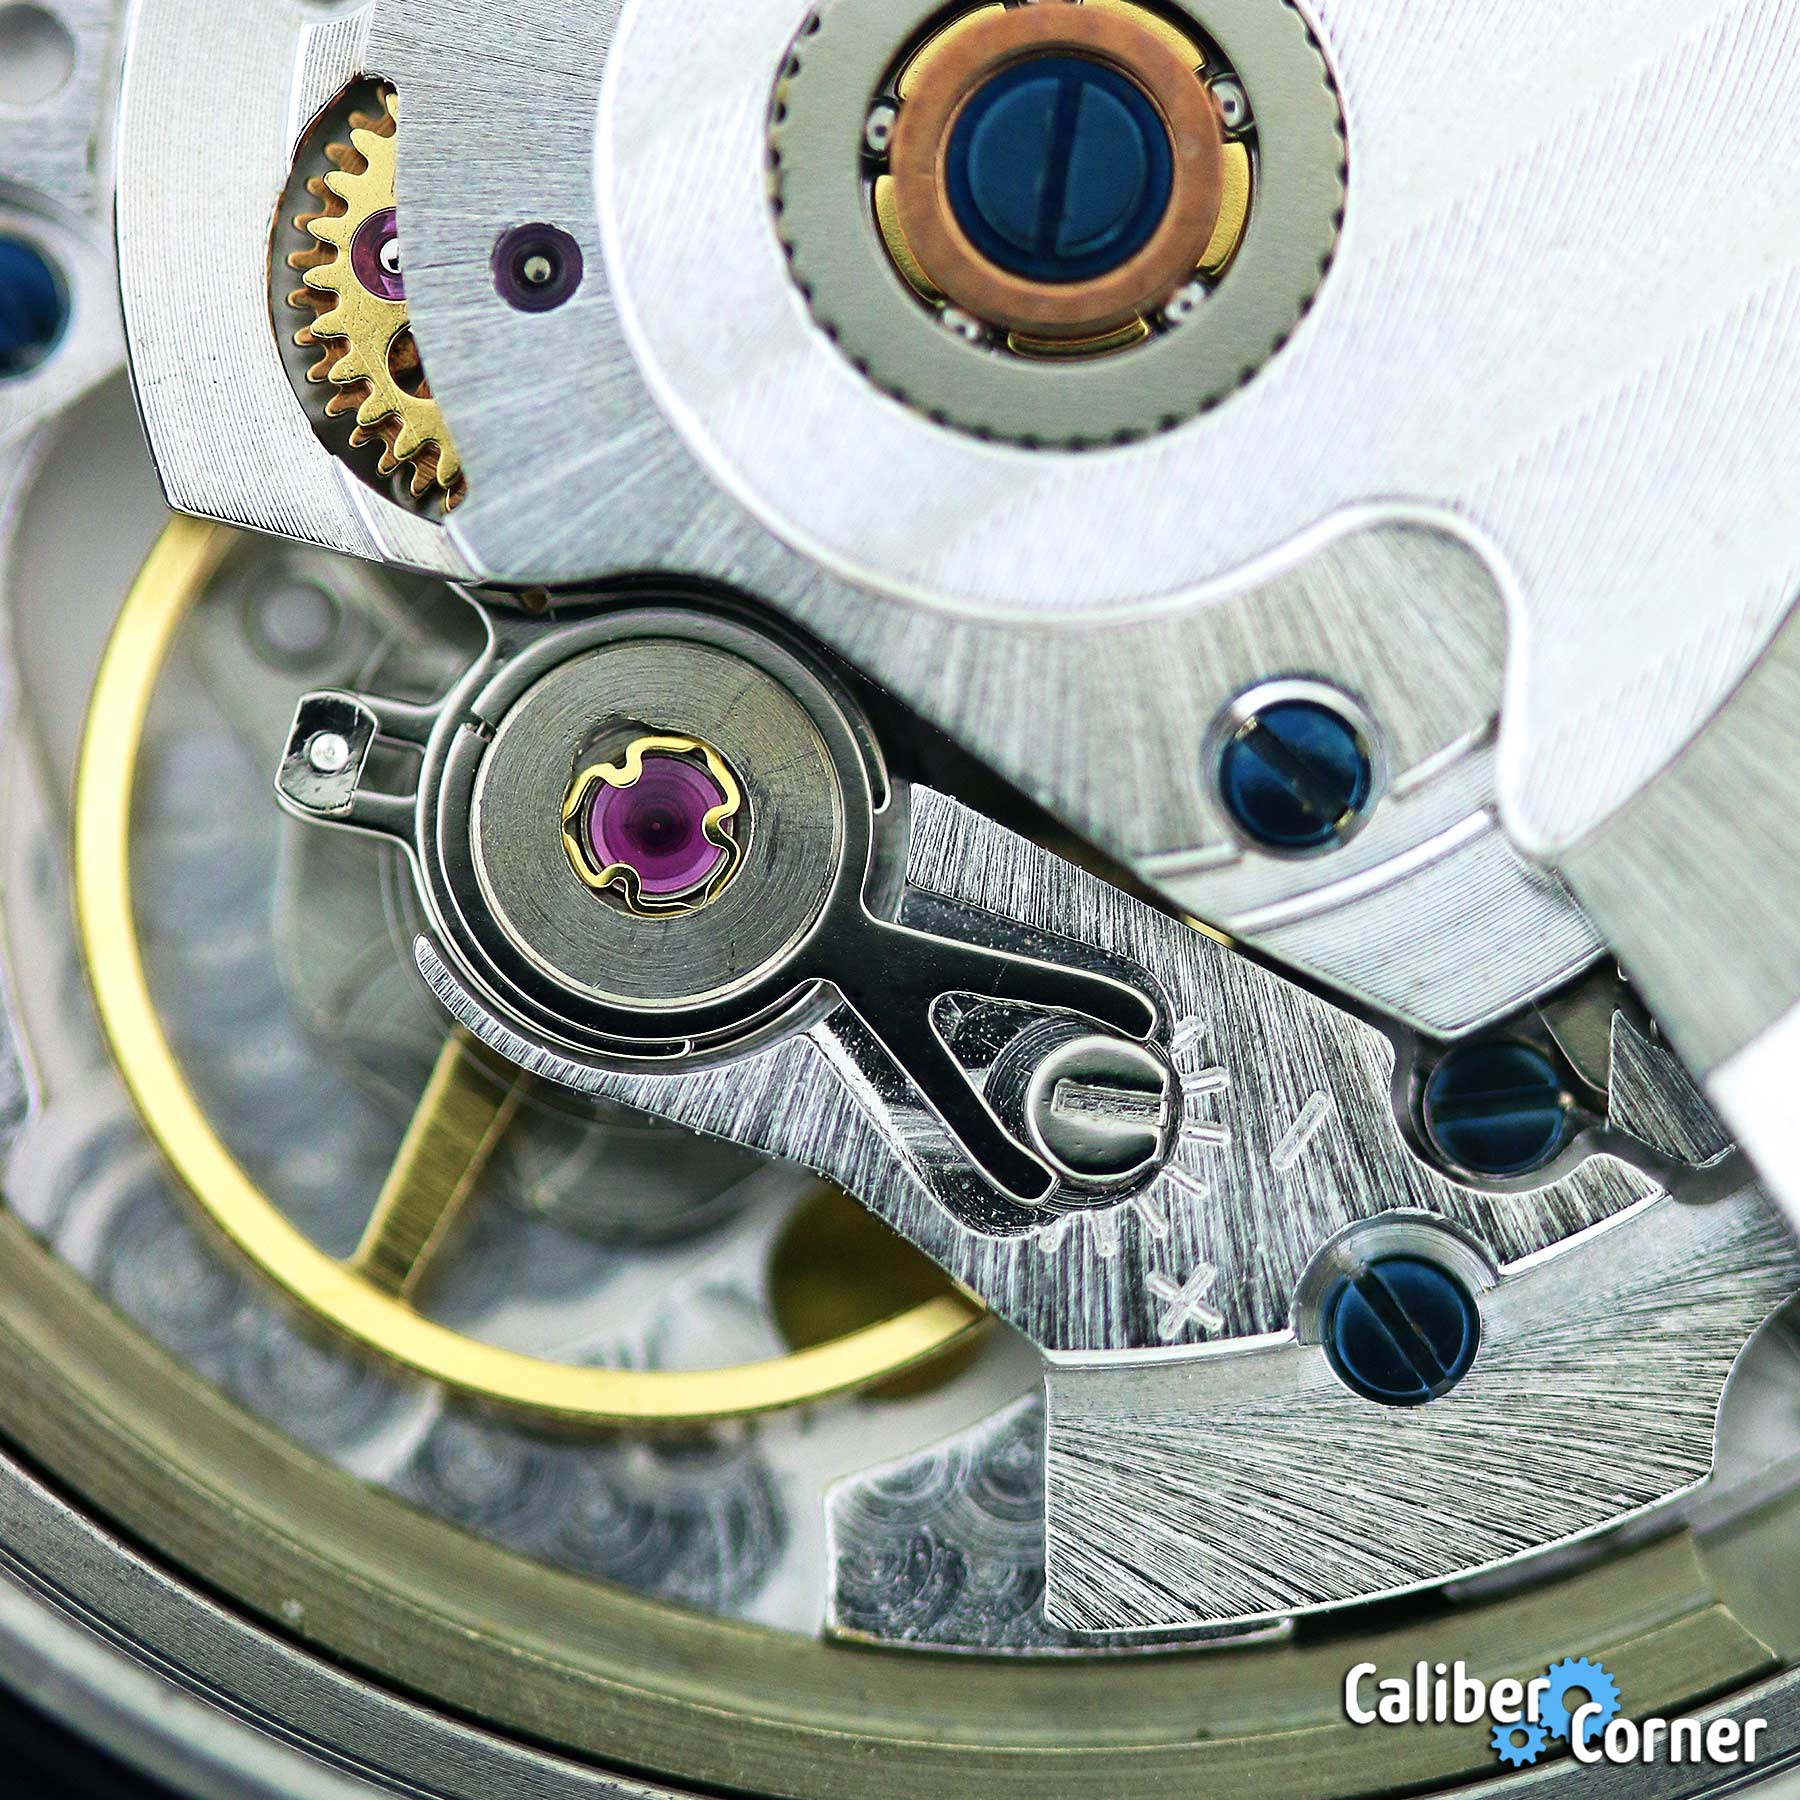 Ginault Caliber 7275 Regulator